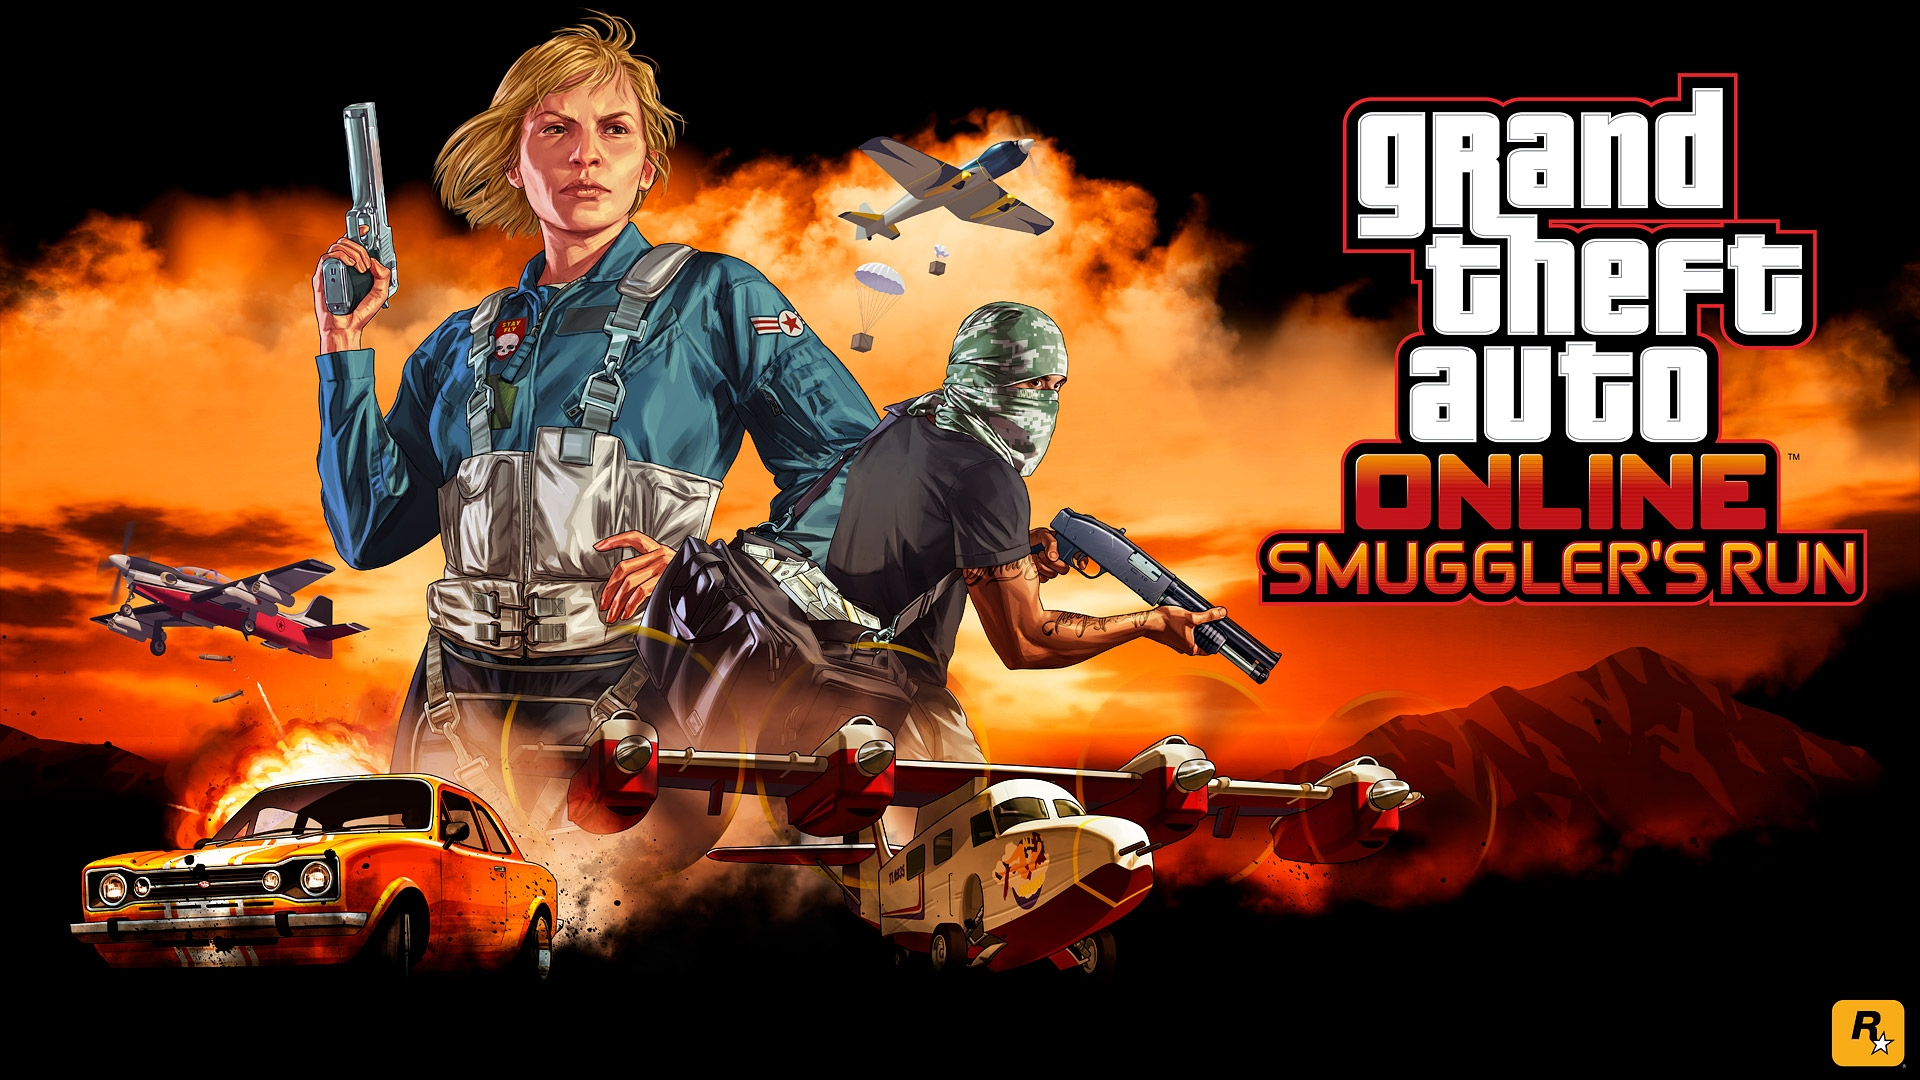 Next Up In GTA Online Smugglers Run Watch The Trailer